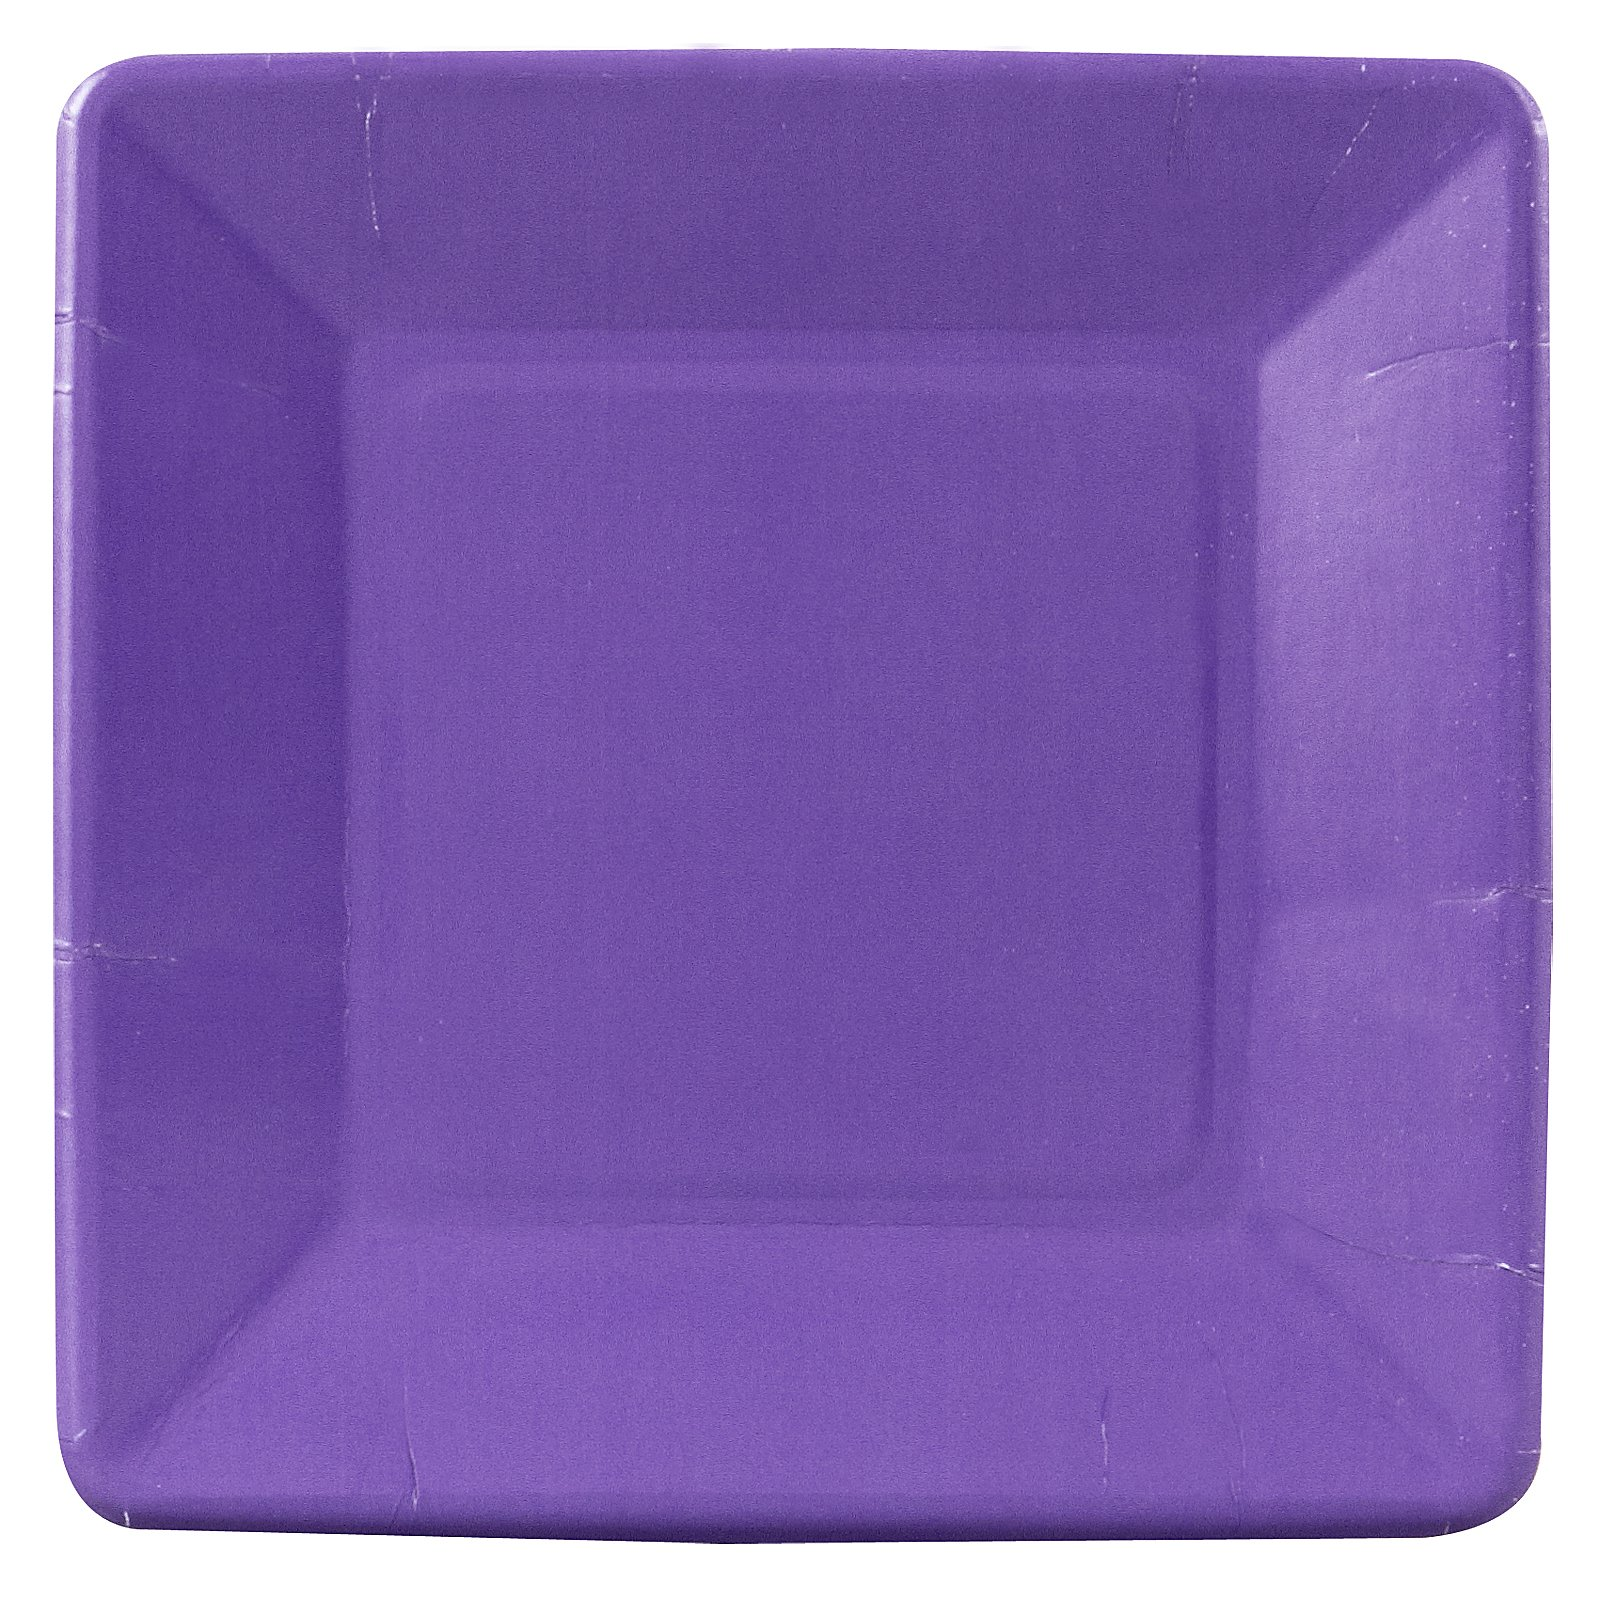 Perfect Purple (Purple) Square Dessert Plates (18 count)